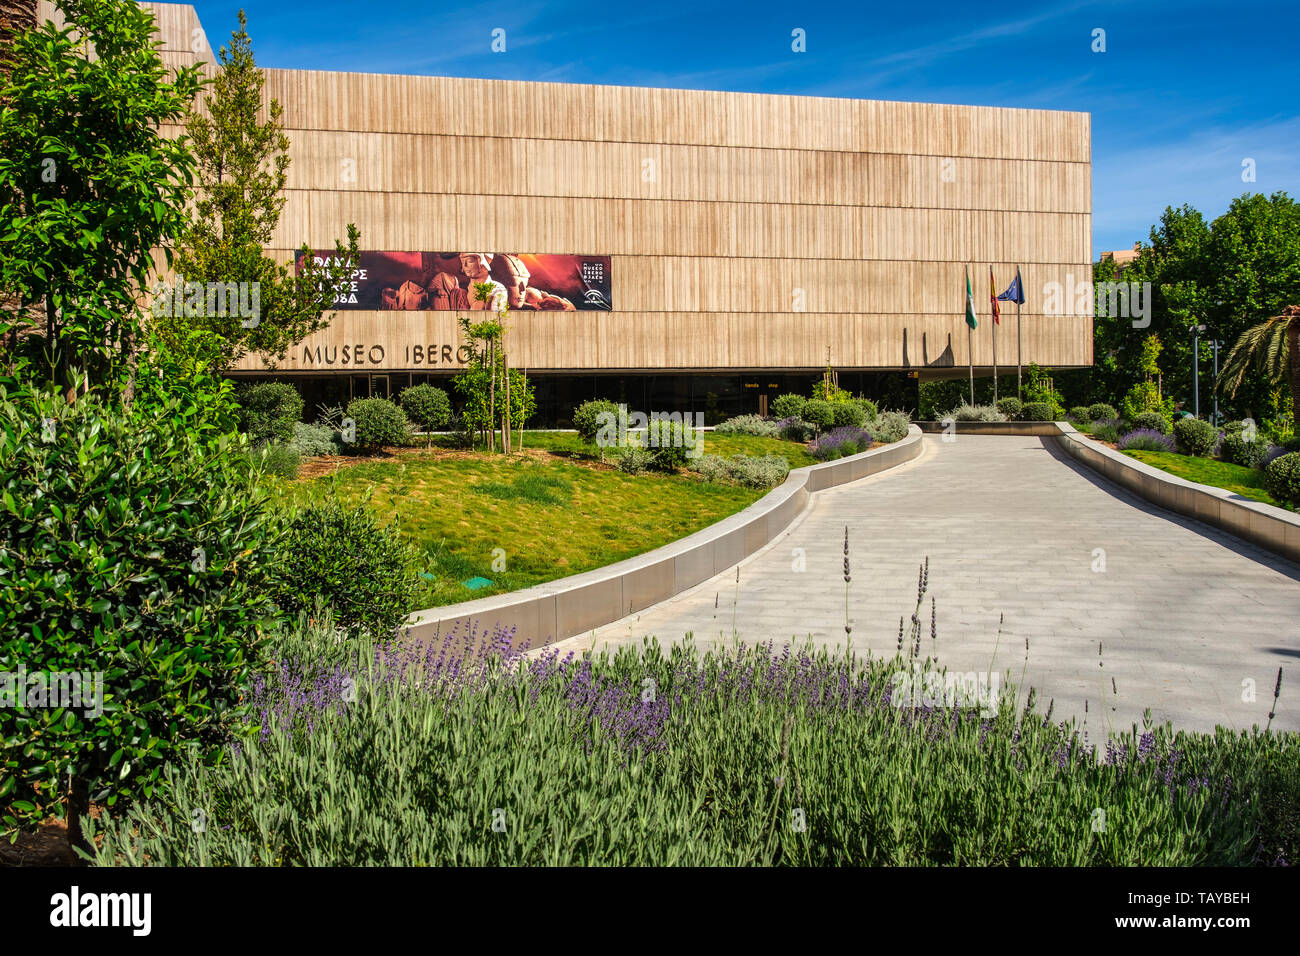 Exterior view The Iberian Museum. Jaén, southern Andalusia. Spain Europe - Stock Image